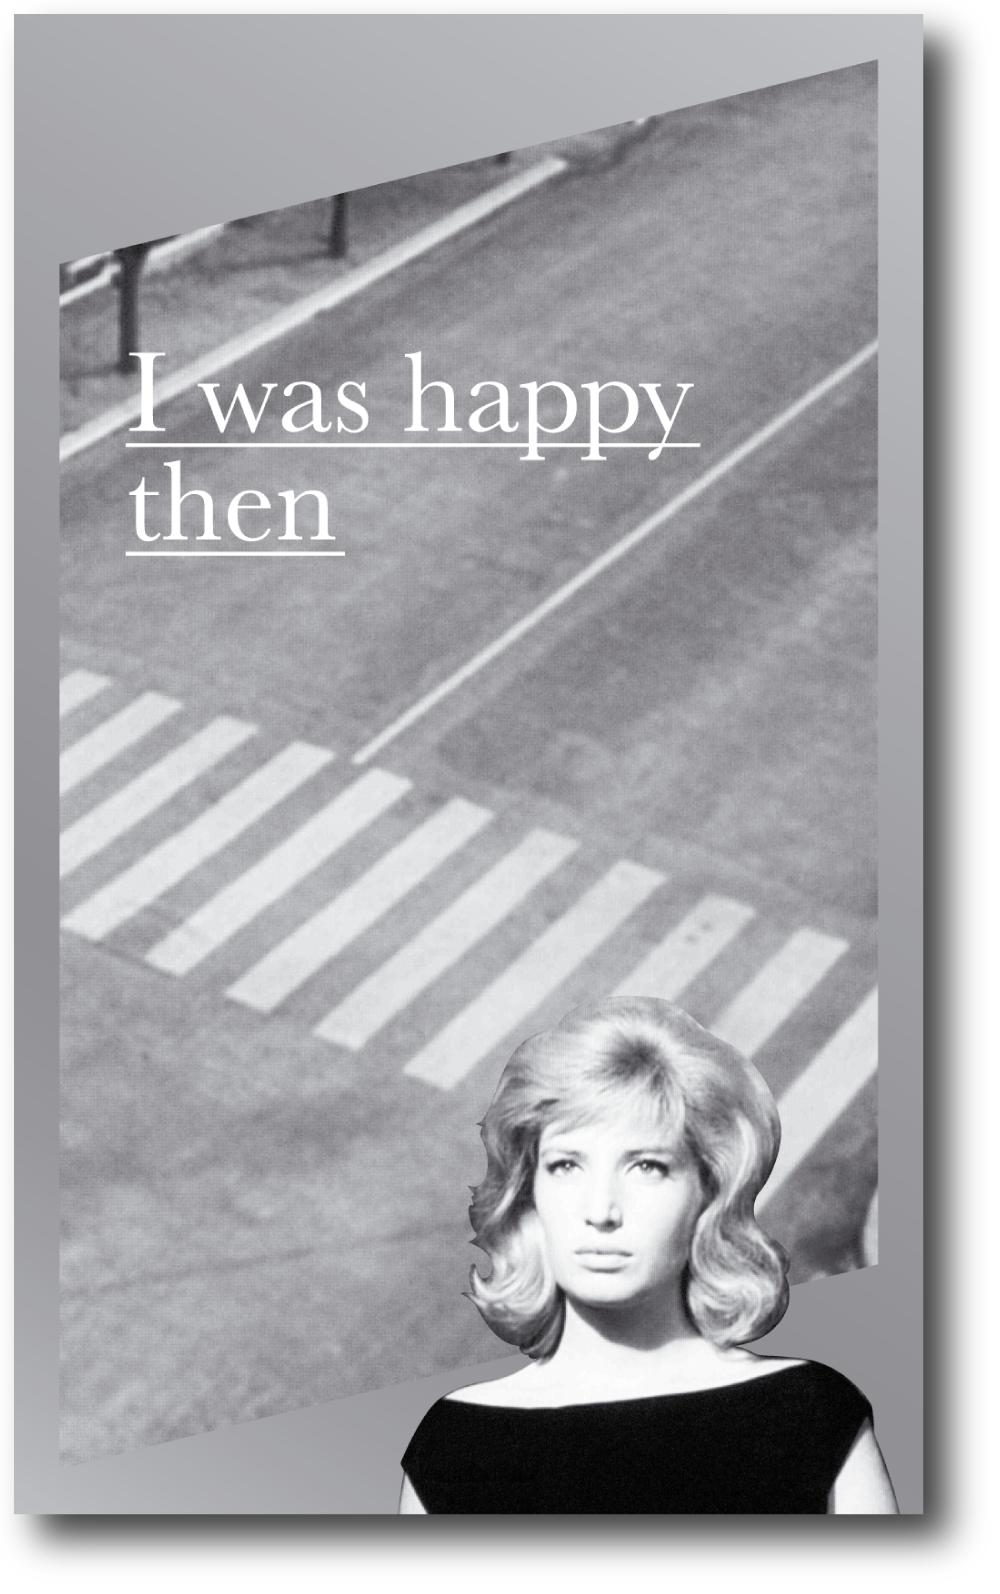 BOC-Publication-i-was-happy-then-cover.png